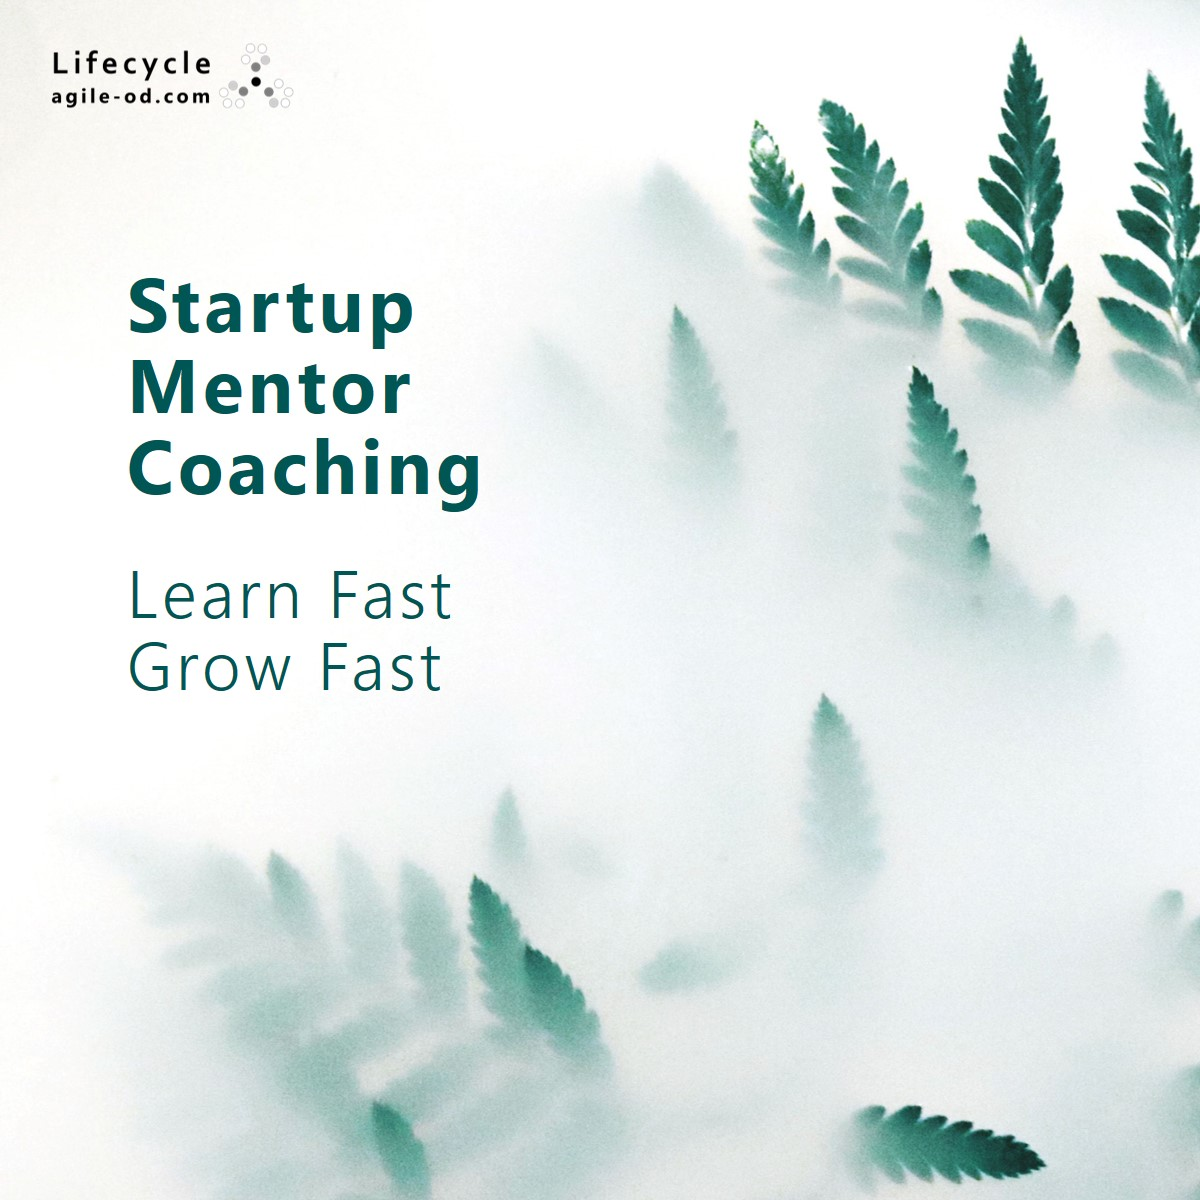 Startup Mentor Coaching | Lifecycle